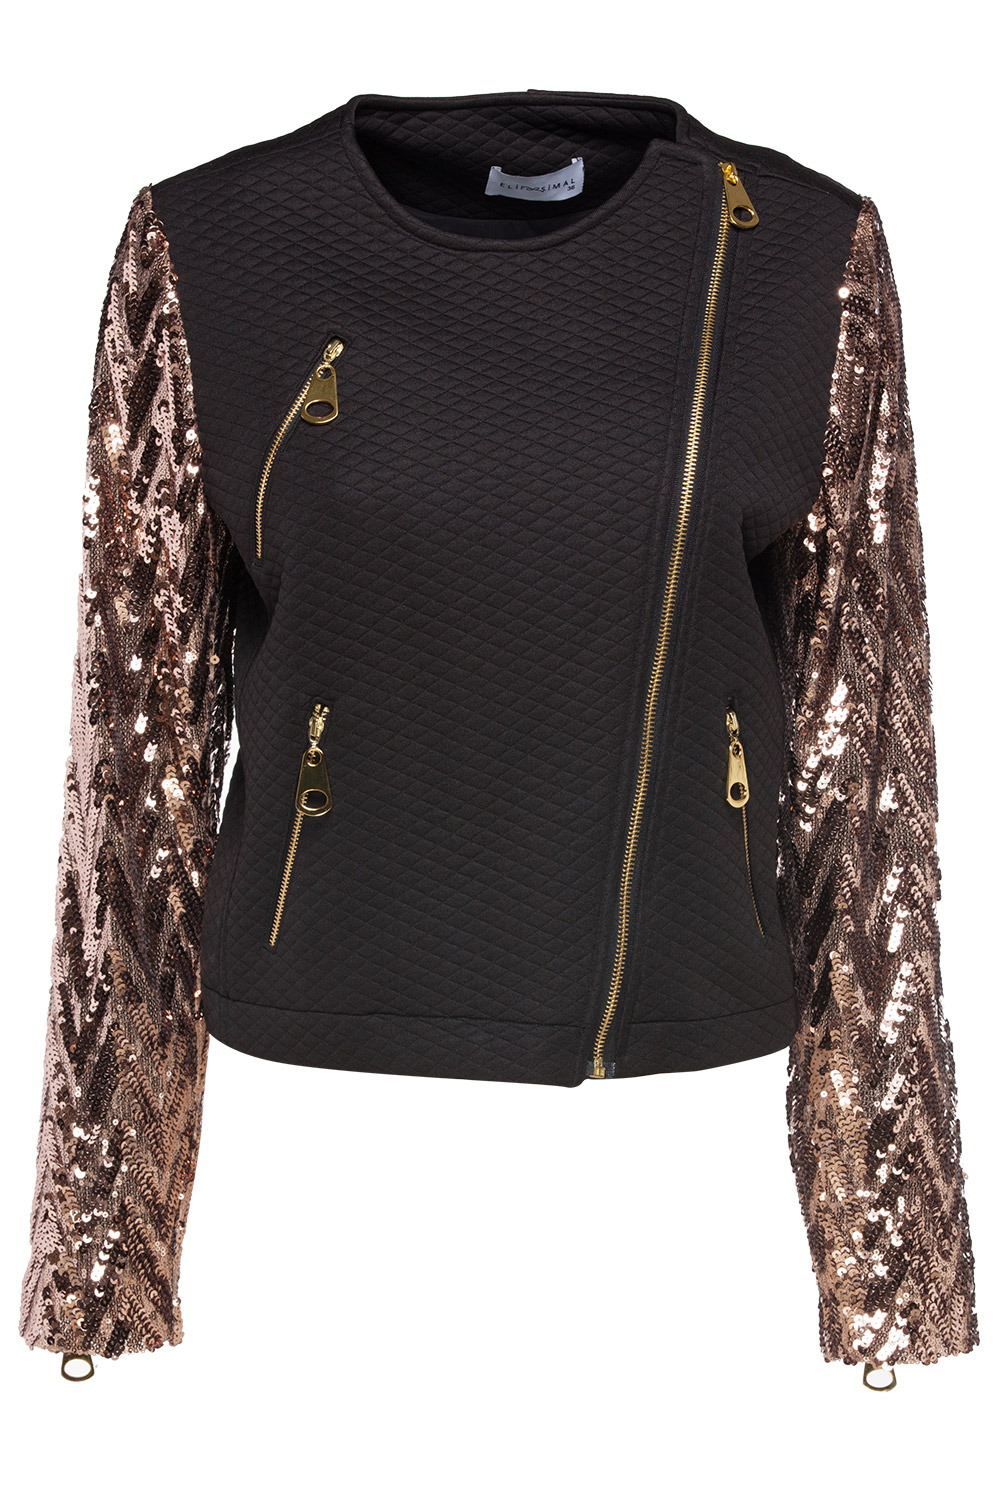 Sequin Jacket. There are many occasions where a sequin jacket is the perfect choice. Sparkling women's apparel draws the eye, effortlessly capturing the attention of onlookers on the street, at the office, or in the club.